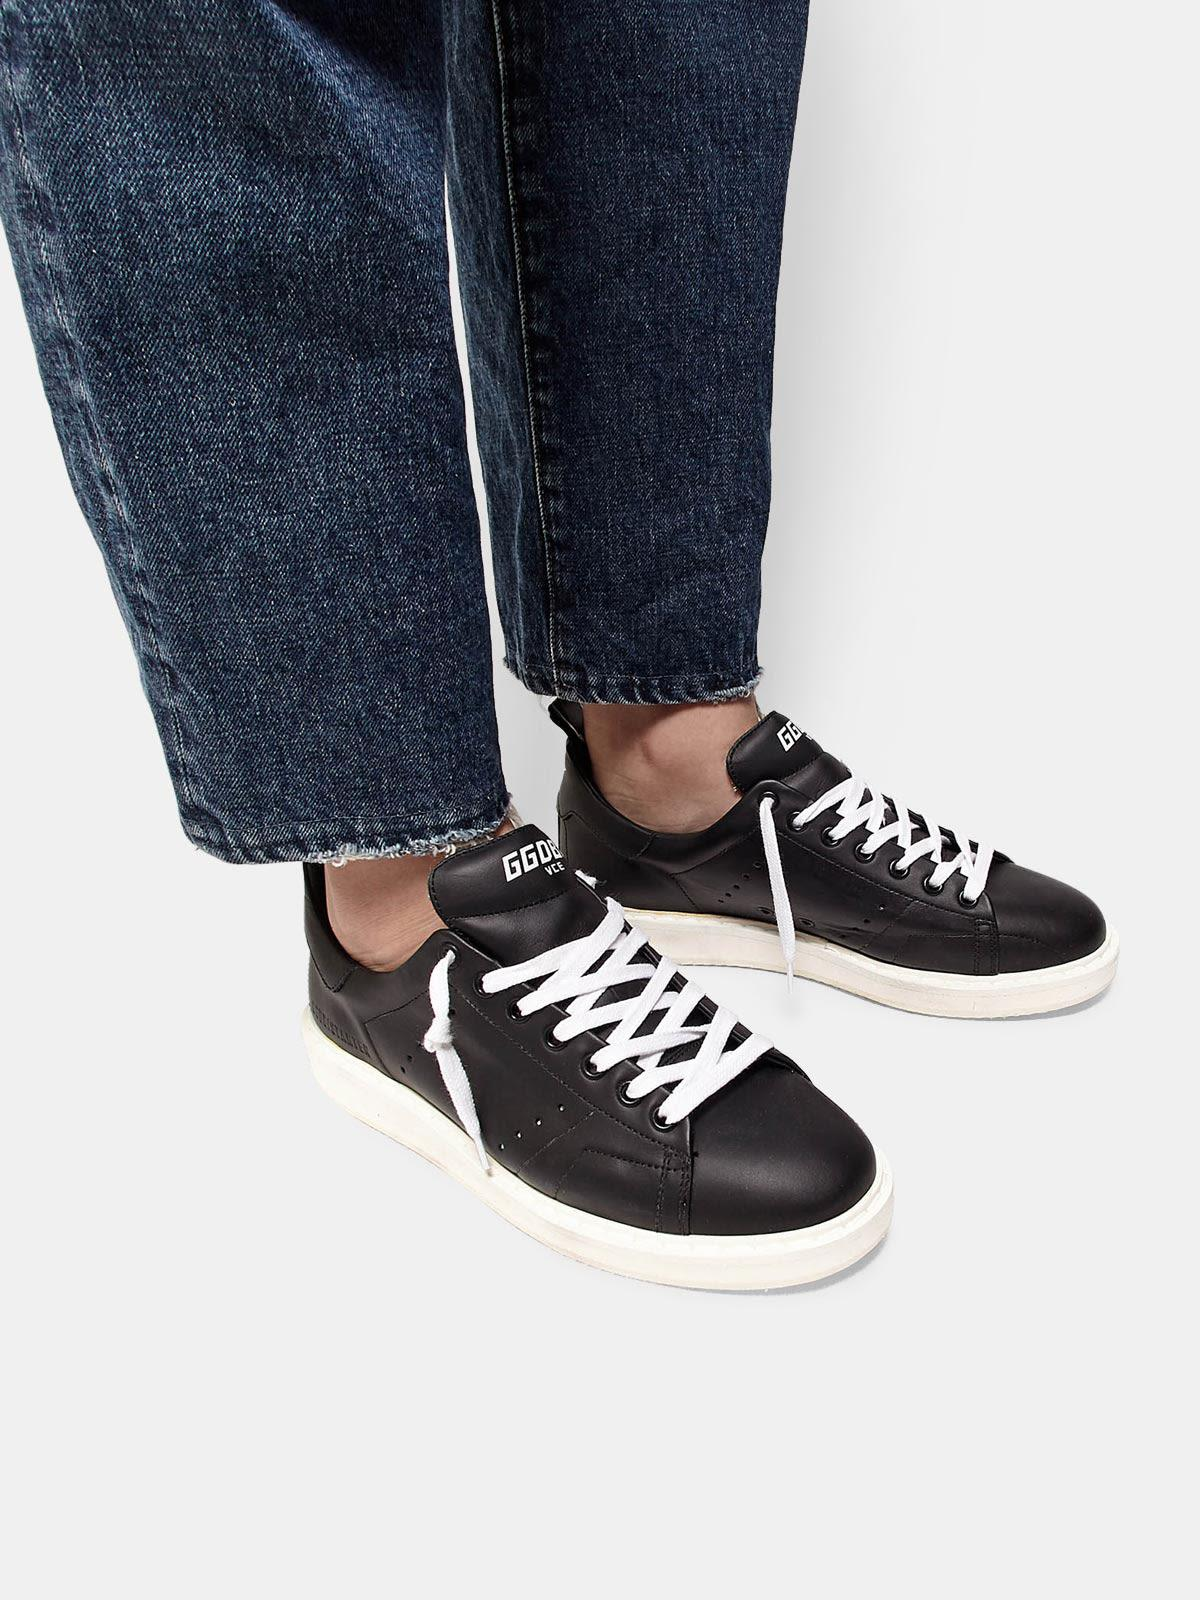 Starter sneakers in total black leather 4